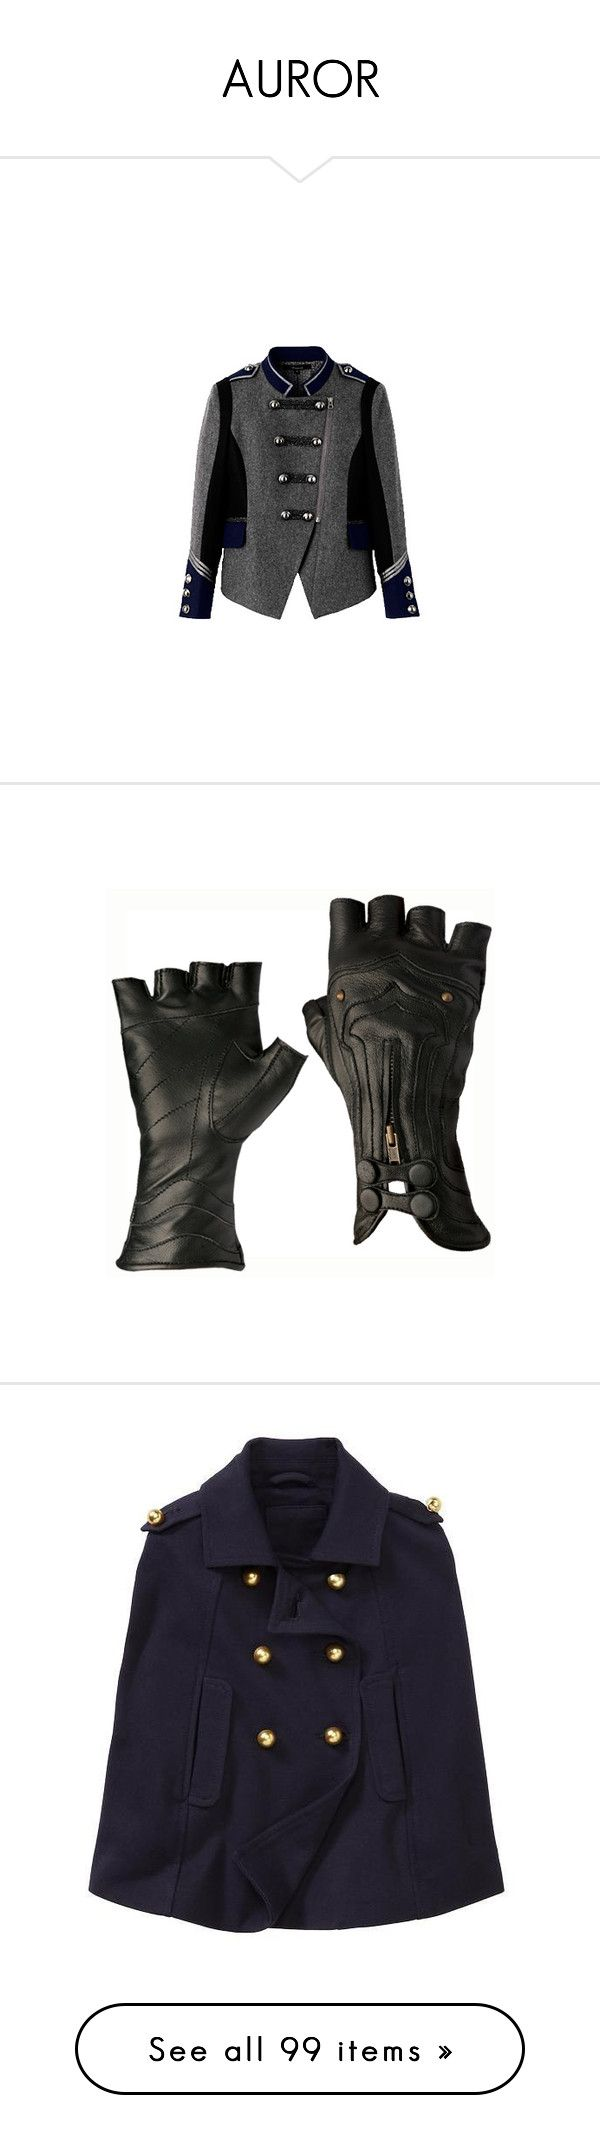 """""""AUROR"""" by pixylamb ❤ liked on Polyvore featuring outerwear, jackets, coats, tops, accessories, gloves, steampunk, luvas, steampunk leather gloves and leather gloves"""